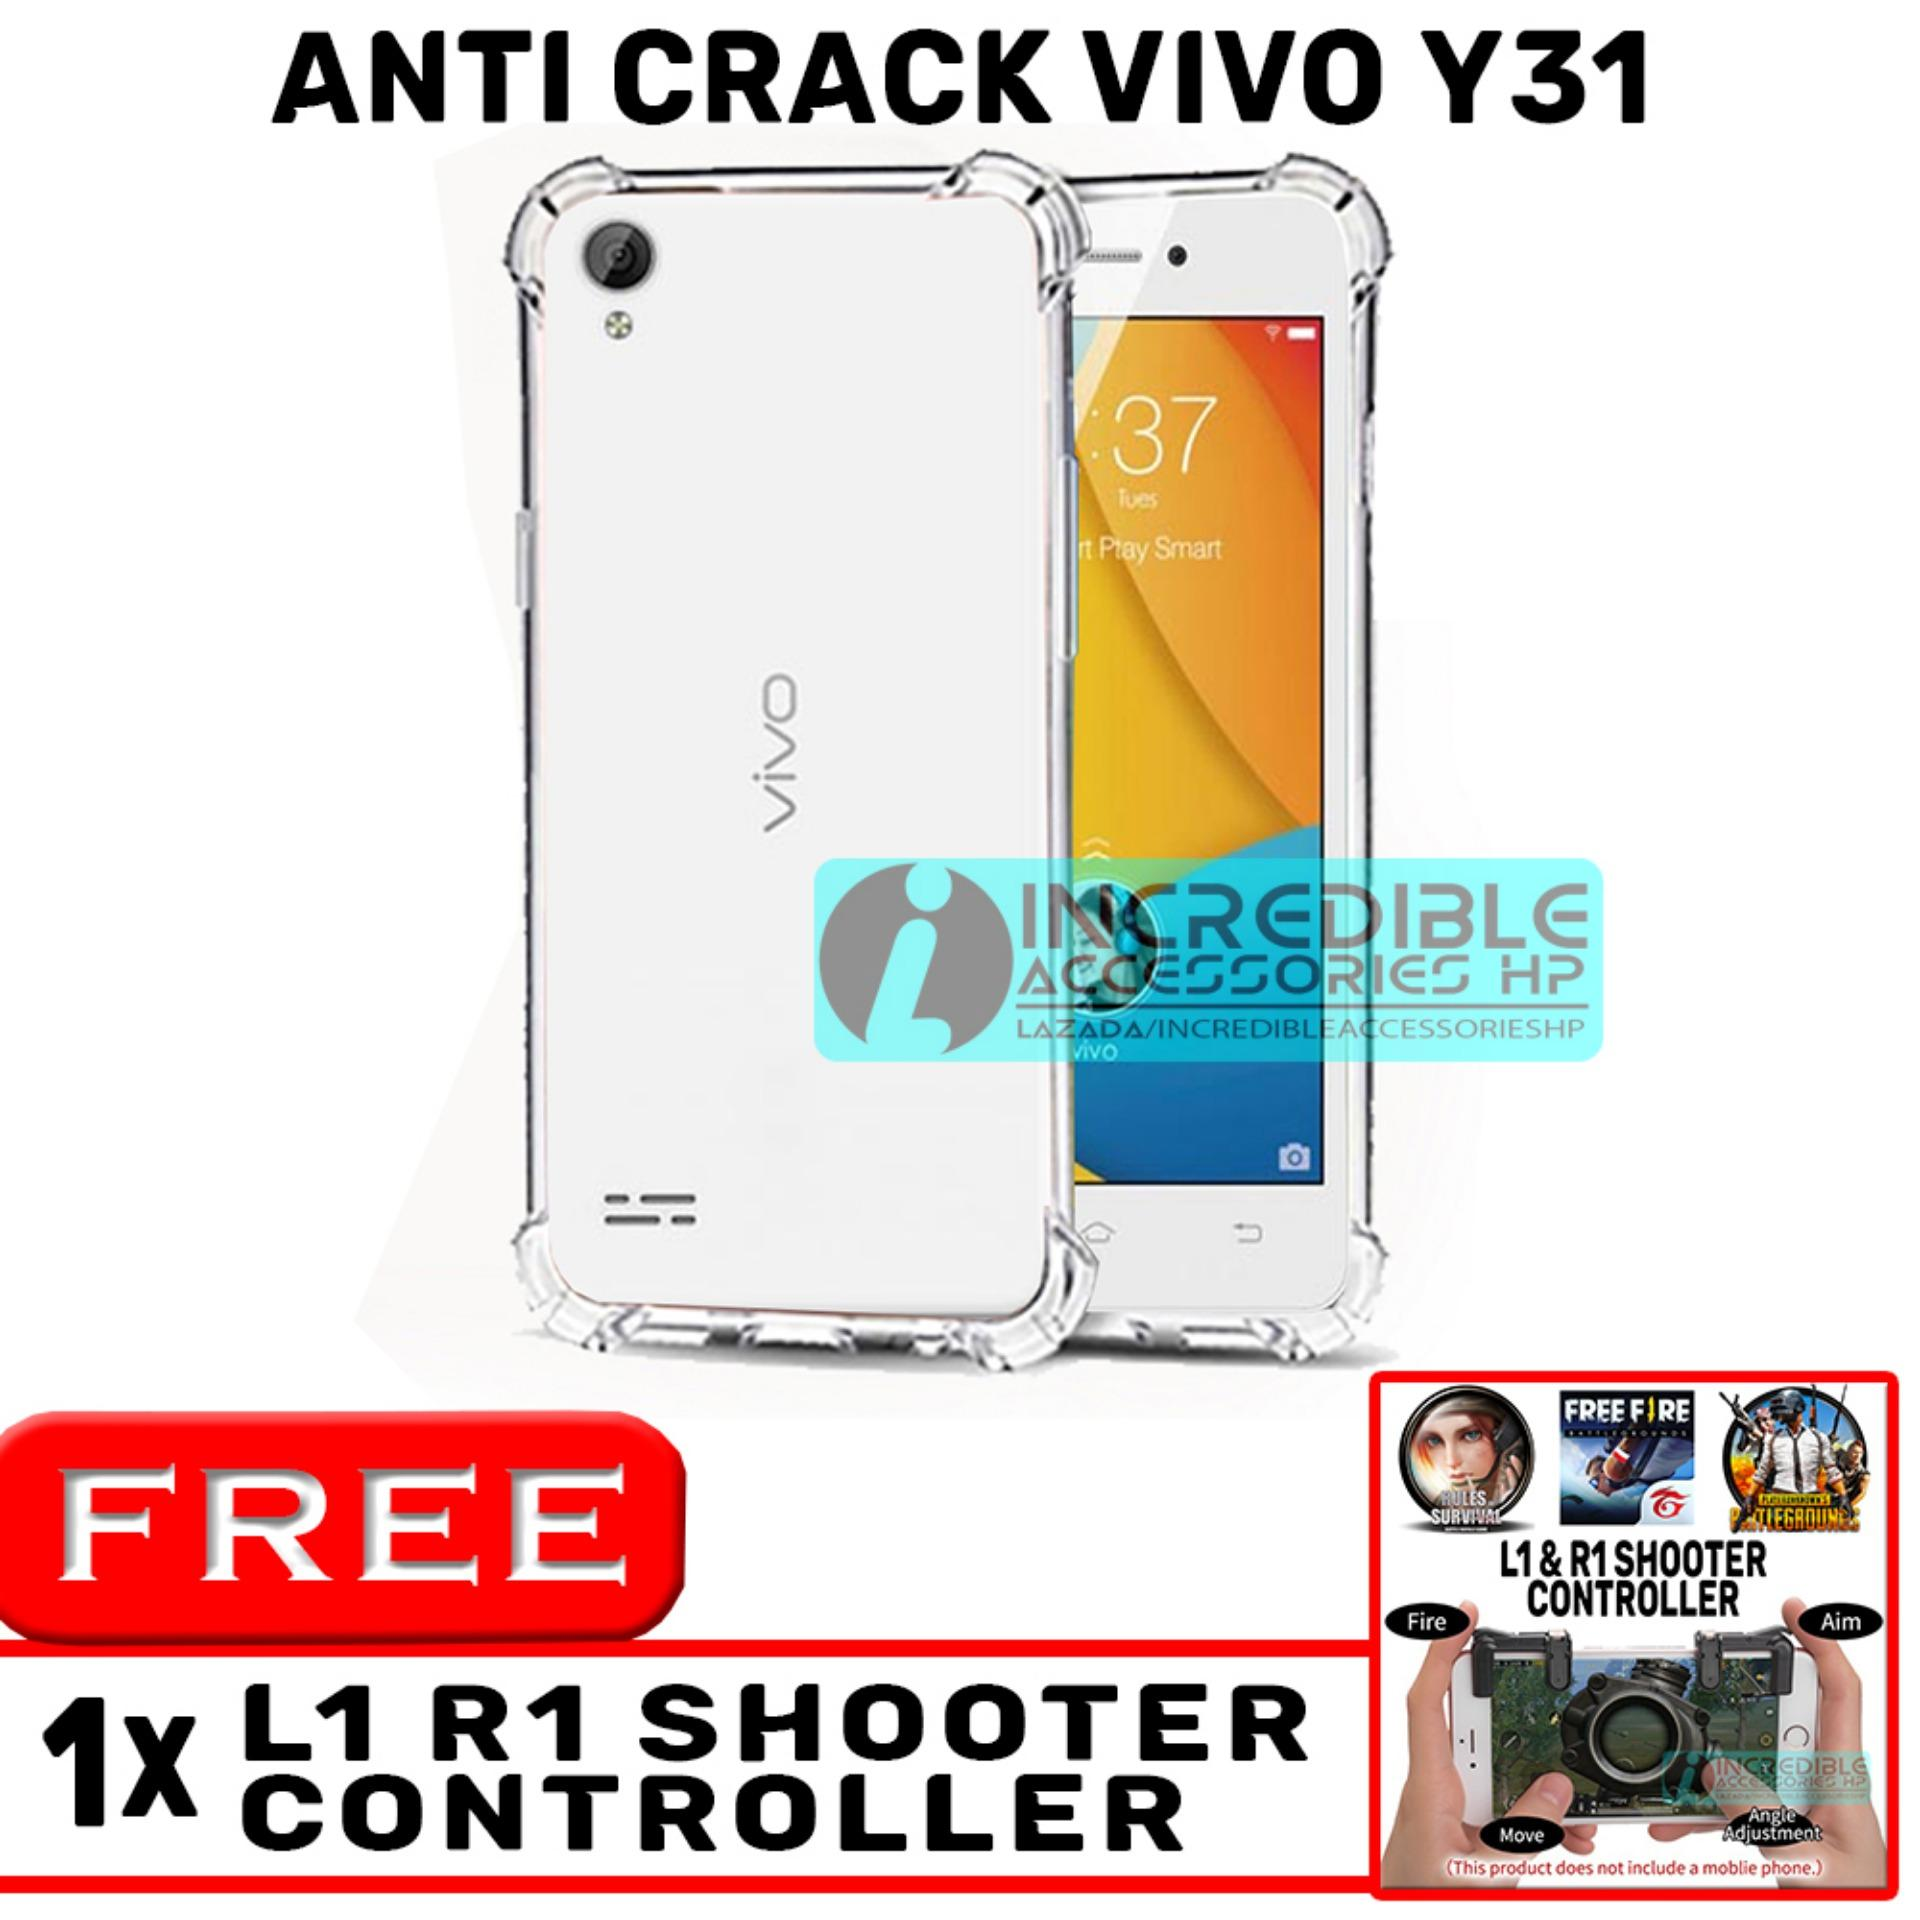 Anti Crack for Vivo Y31 Softcase Elegant Anti Shock Jelly Case - Bening + Free PUBG Mobile L1 R1 Shooter Controller